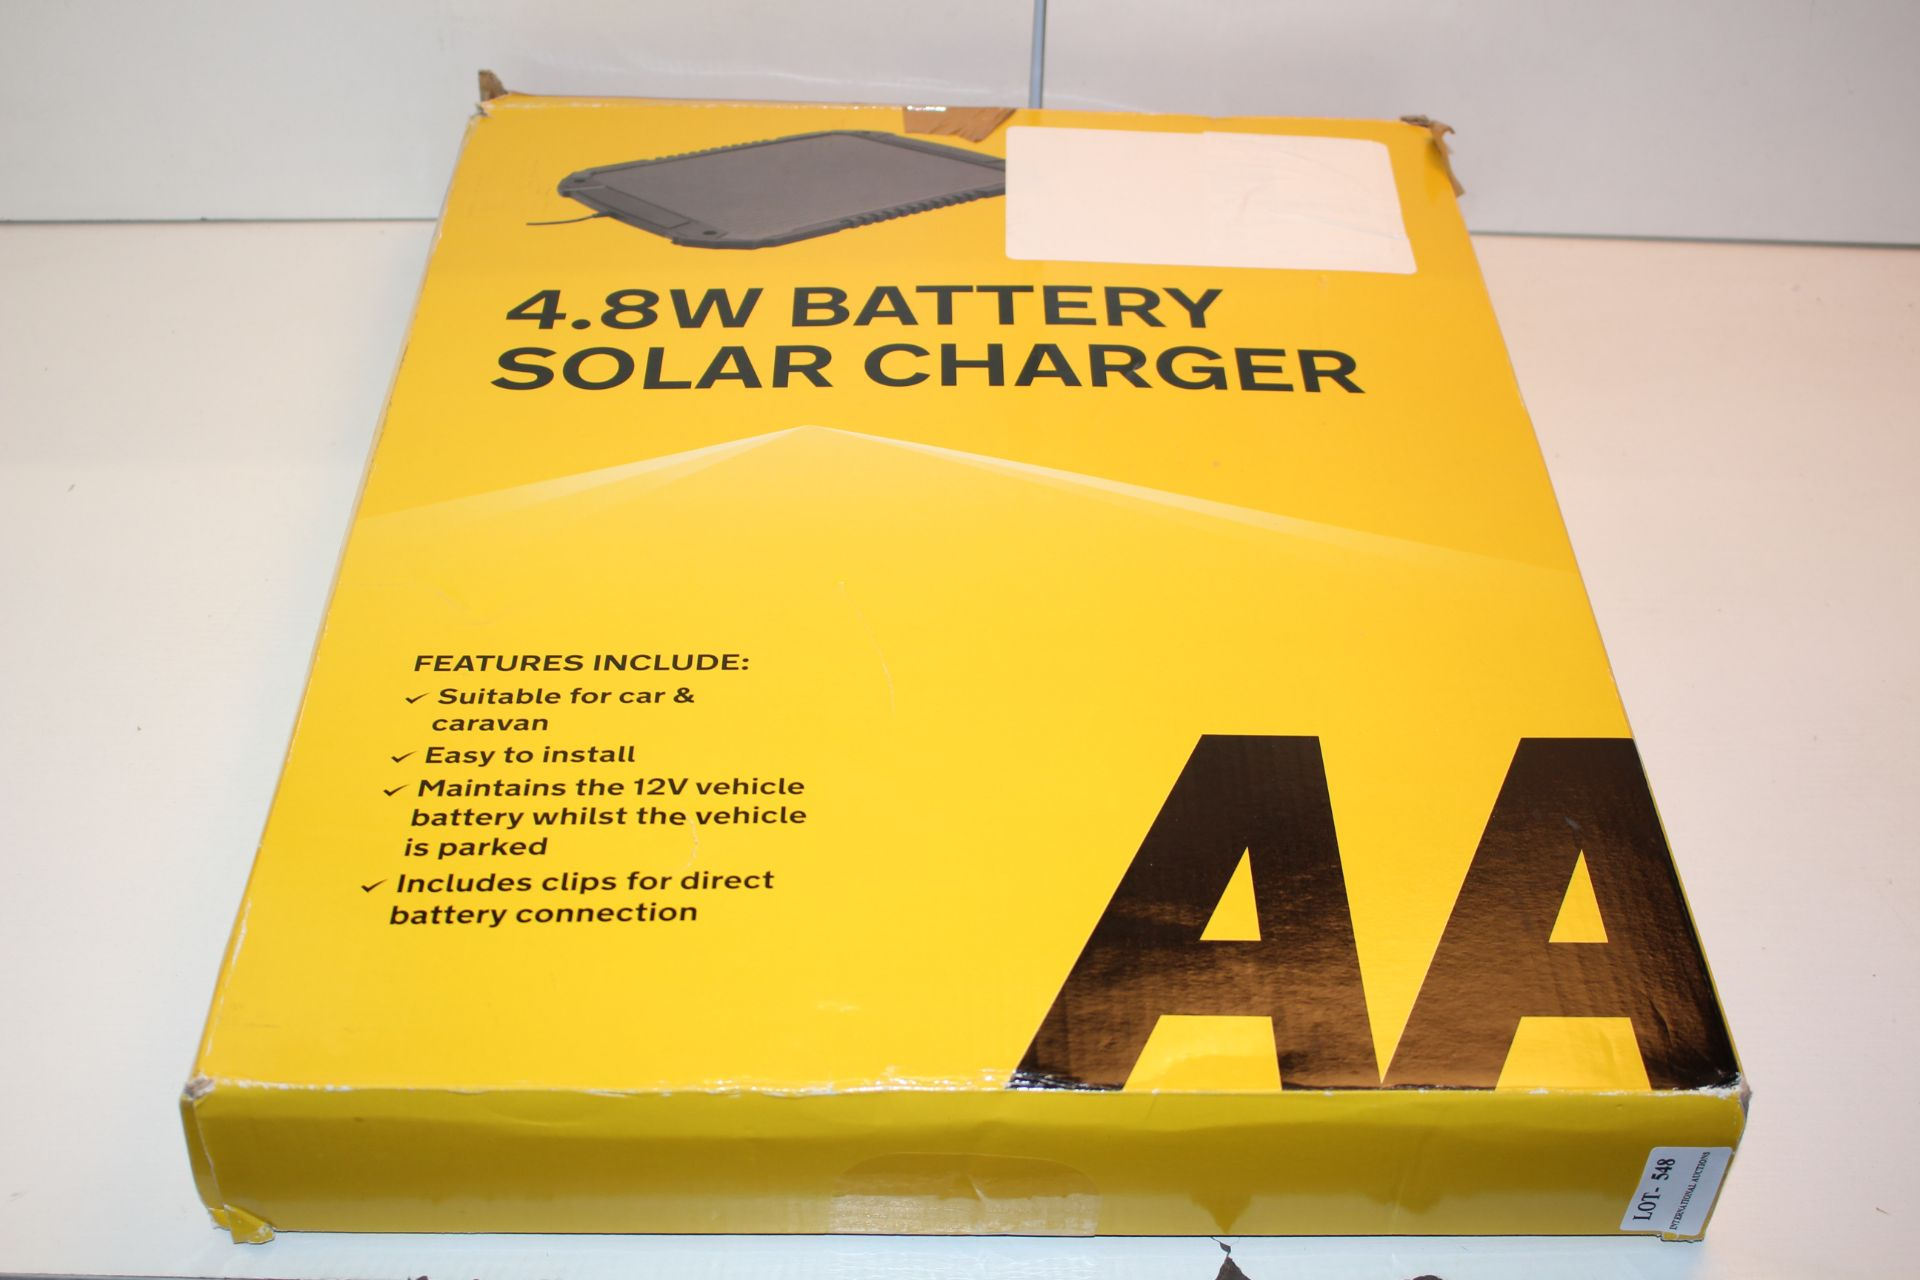 BOXEDAA 3.8W BATTERY CHARGER, SOLr charger Condition ReportAppraisal Available on Request- All Items